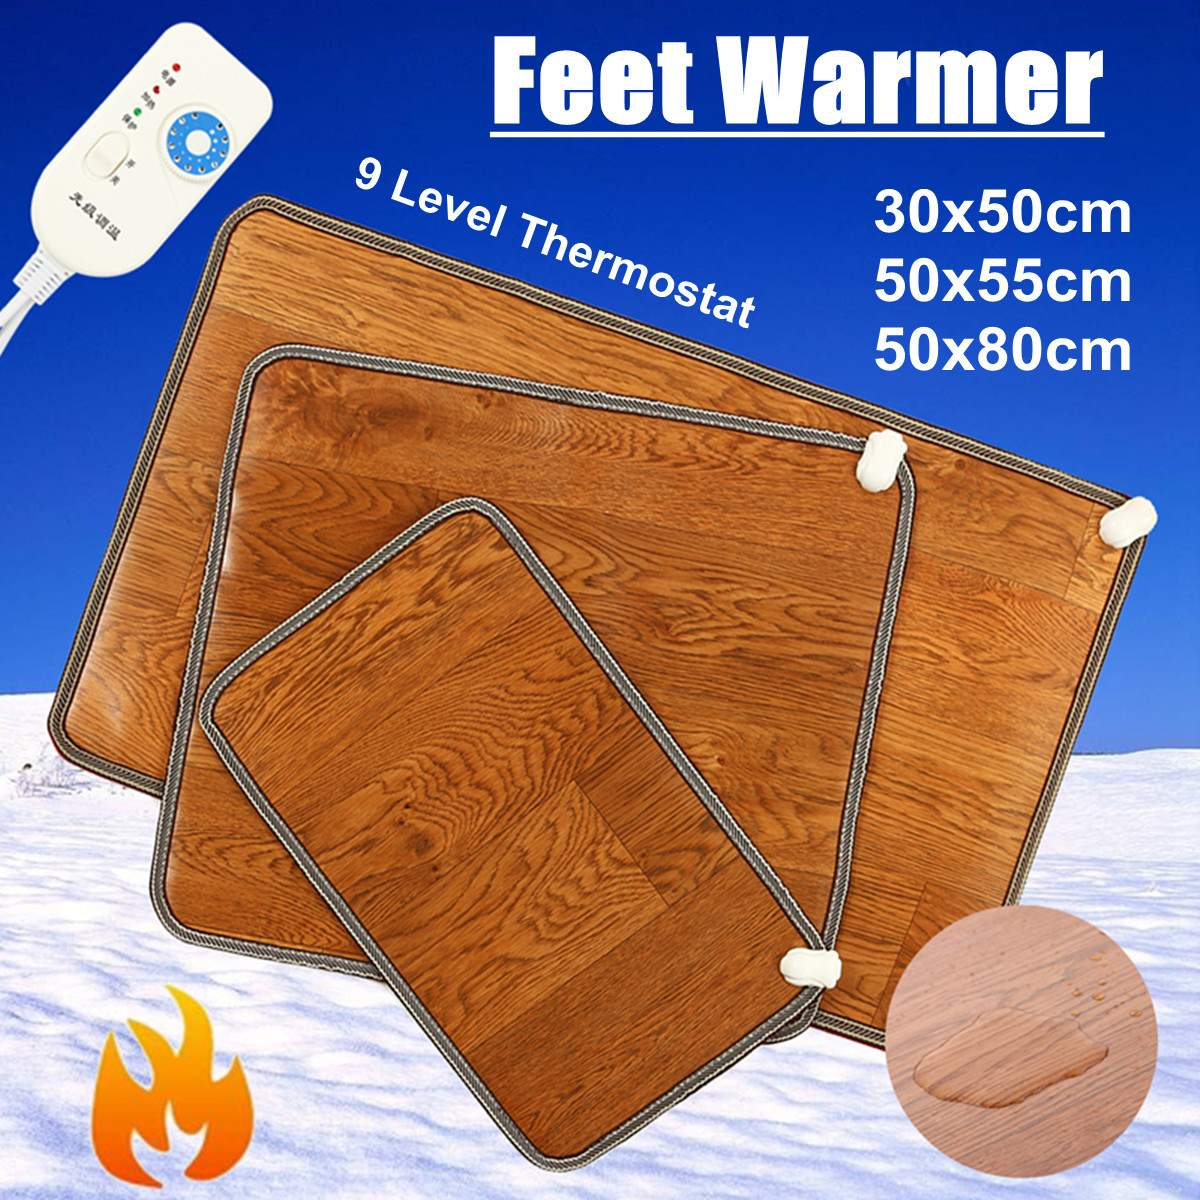 Leather Heating Foot Mat Warmer Electric Heating Pads Feet Leg Warmer Carpet Thermostat Home Office Warming Tools 3 Sizes